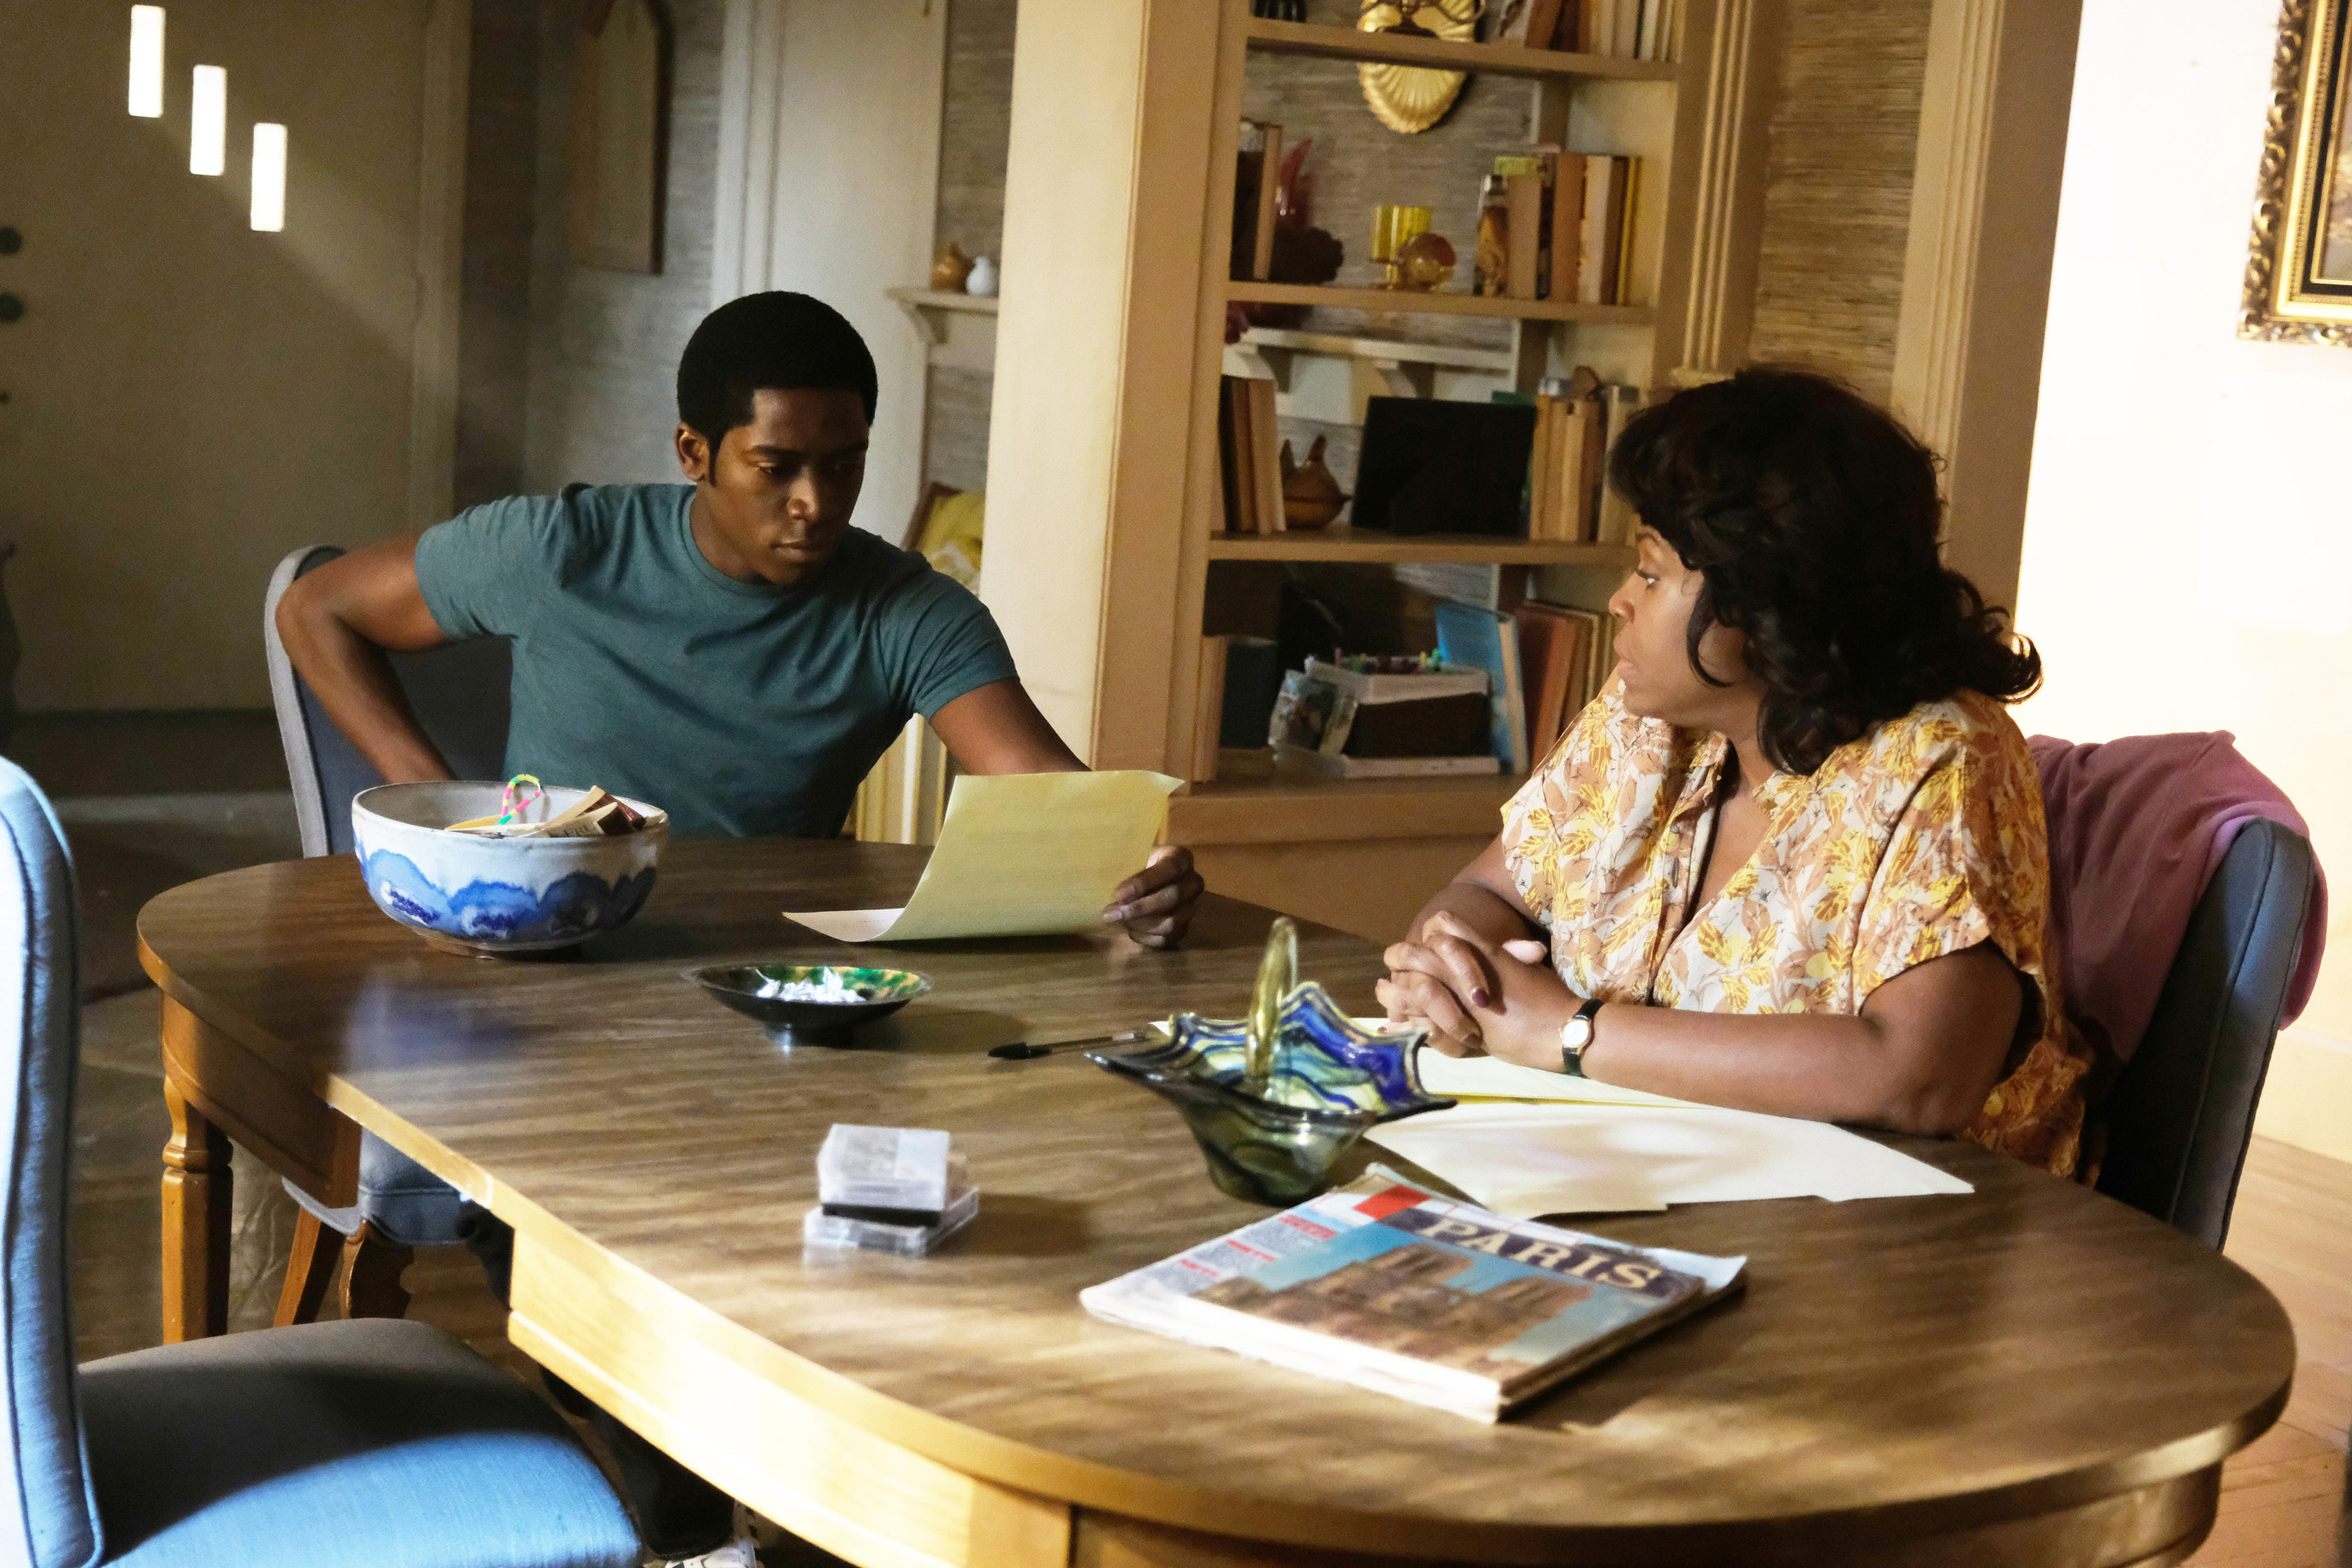 """Damson sitting at a table and reading a piece of paper as an older woman looks on in a scene from """"Snowfall"""""""